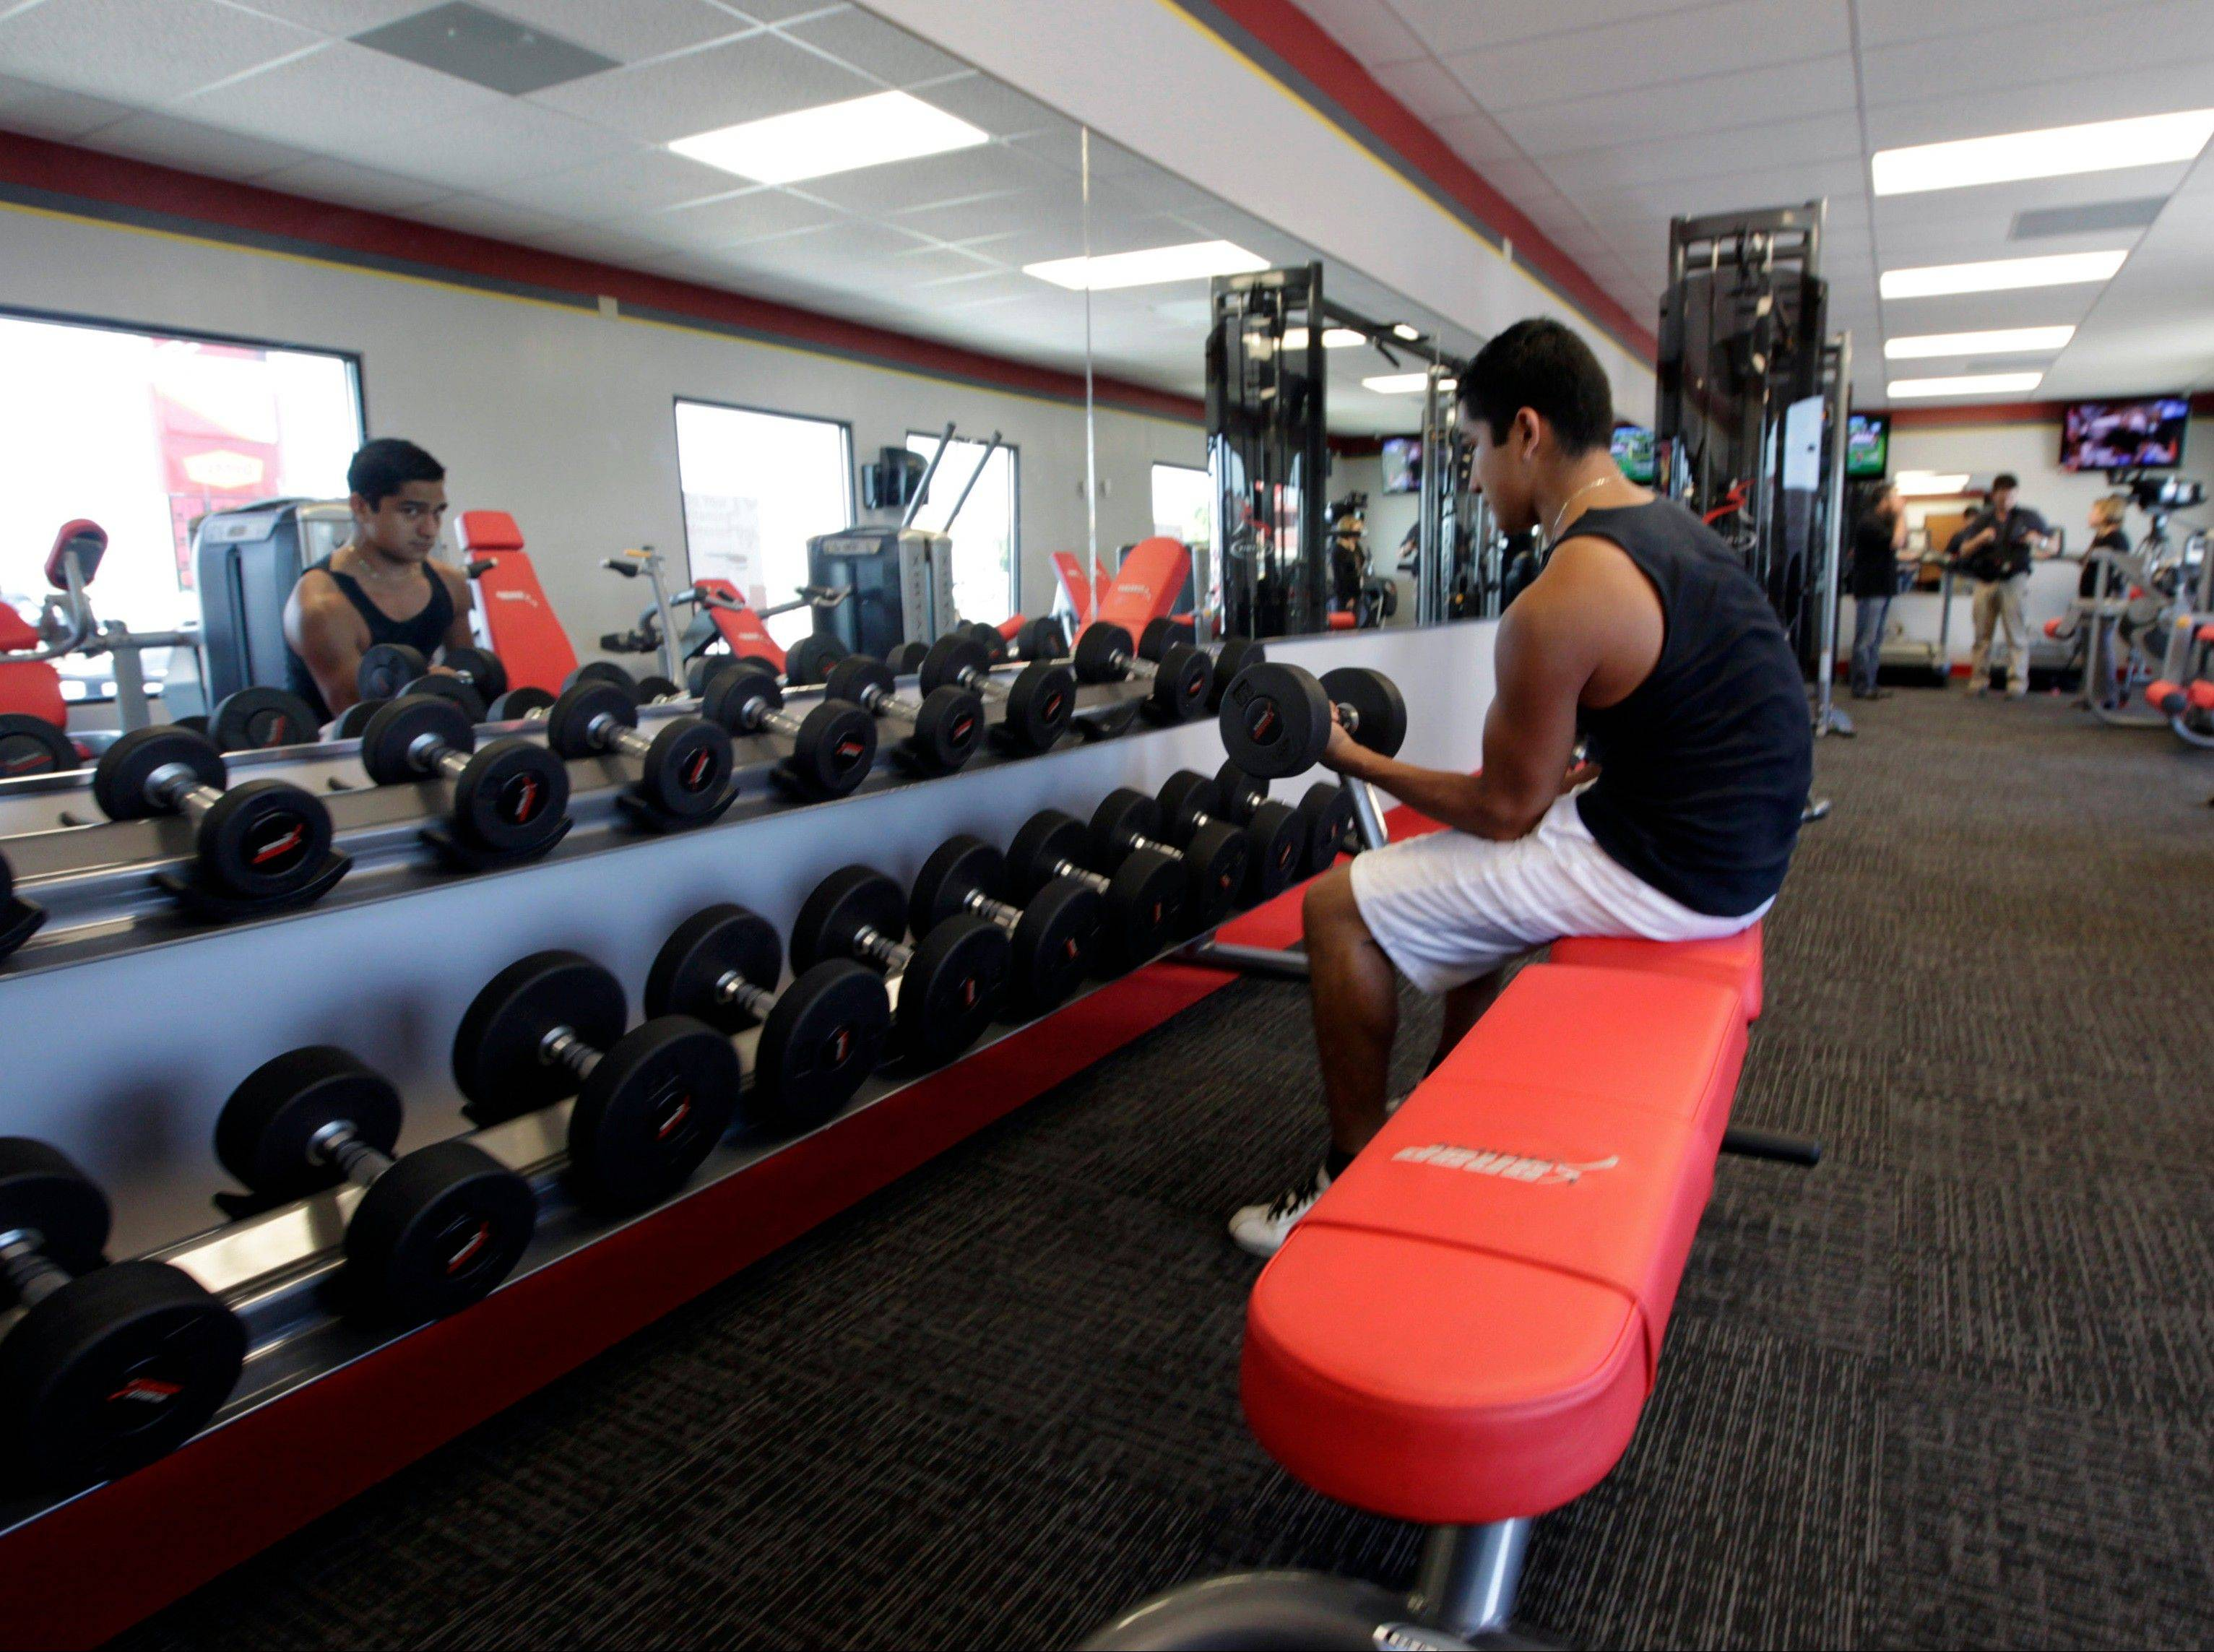 A customer works out at Snap Fitness Rolling Strong Gym at a truck stop in Dallas. From trucking companies embracing wellness and weight-loss programs to gyms being installed at truck stops, momentum has picked up in recent years to help those who make their living driving big rigs get into shape.